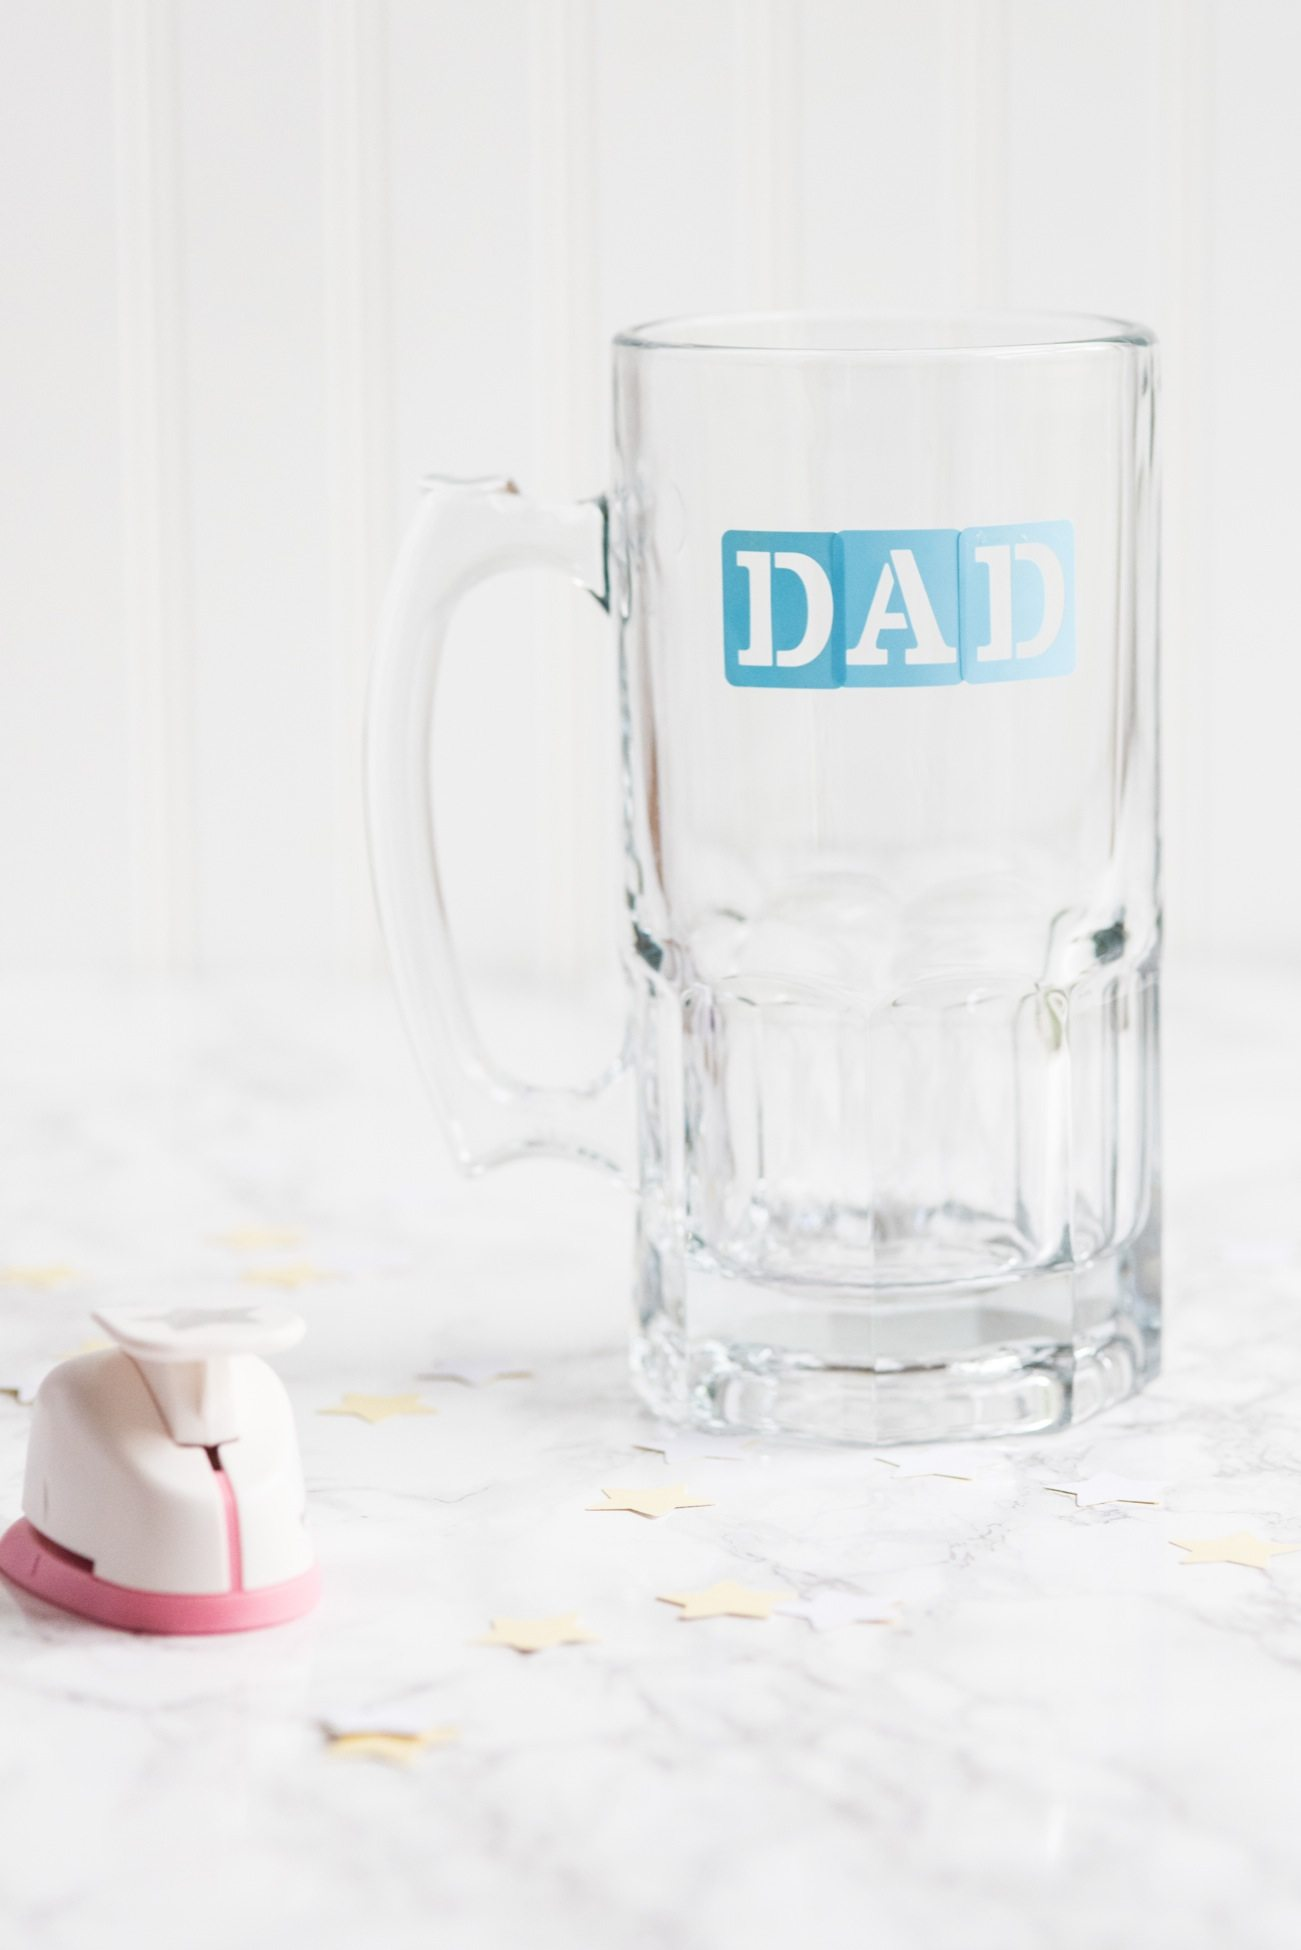 DIY Etched Beer Mugs for Father's Day | Father's Day gift ideas, DIY projects, homemade gifts ideas, homemade Father's Day gifts, entertaining tips and more from @cydconverse